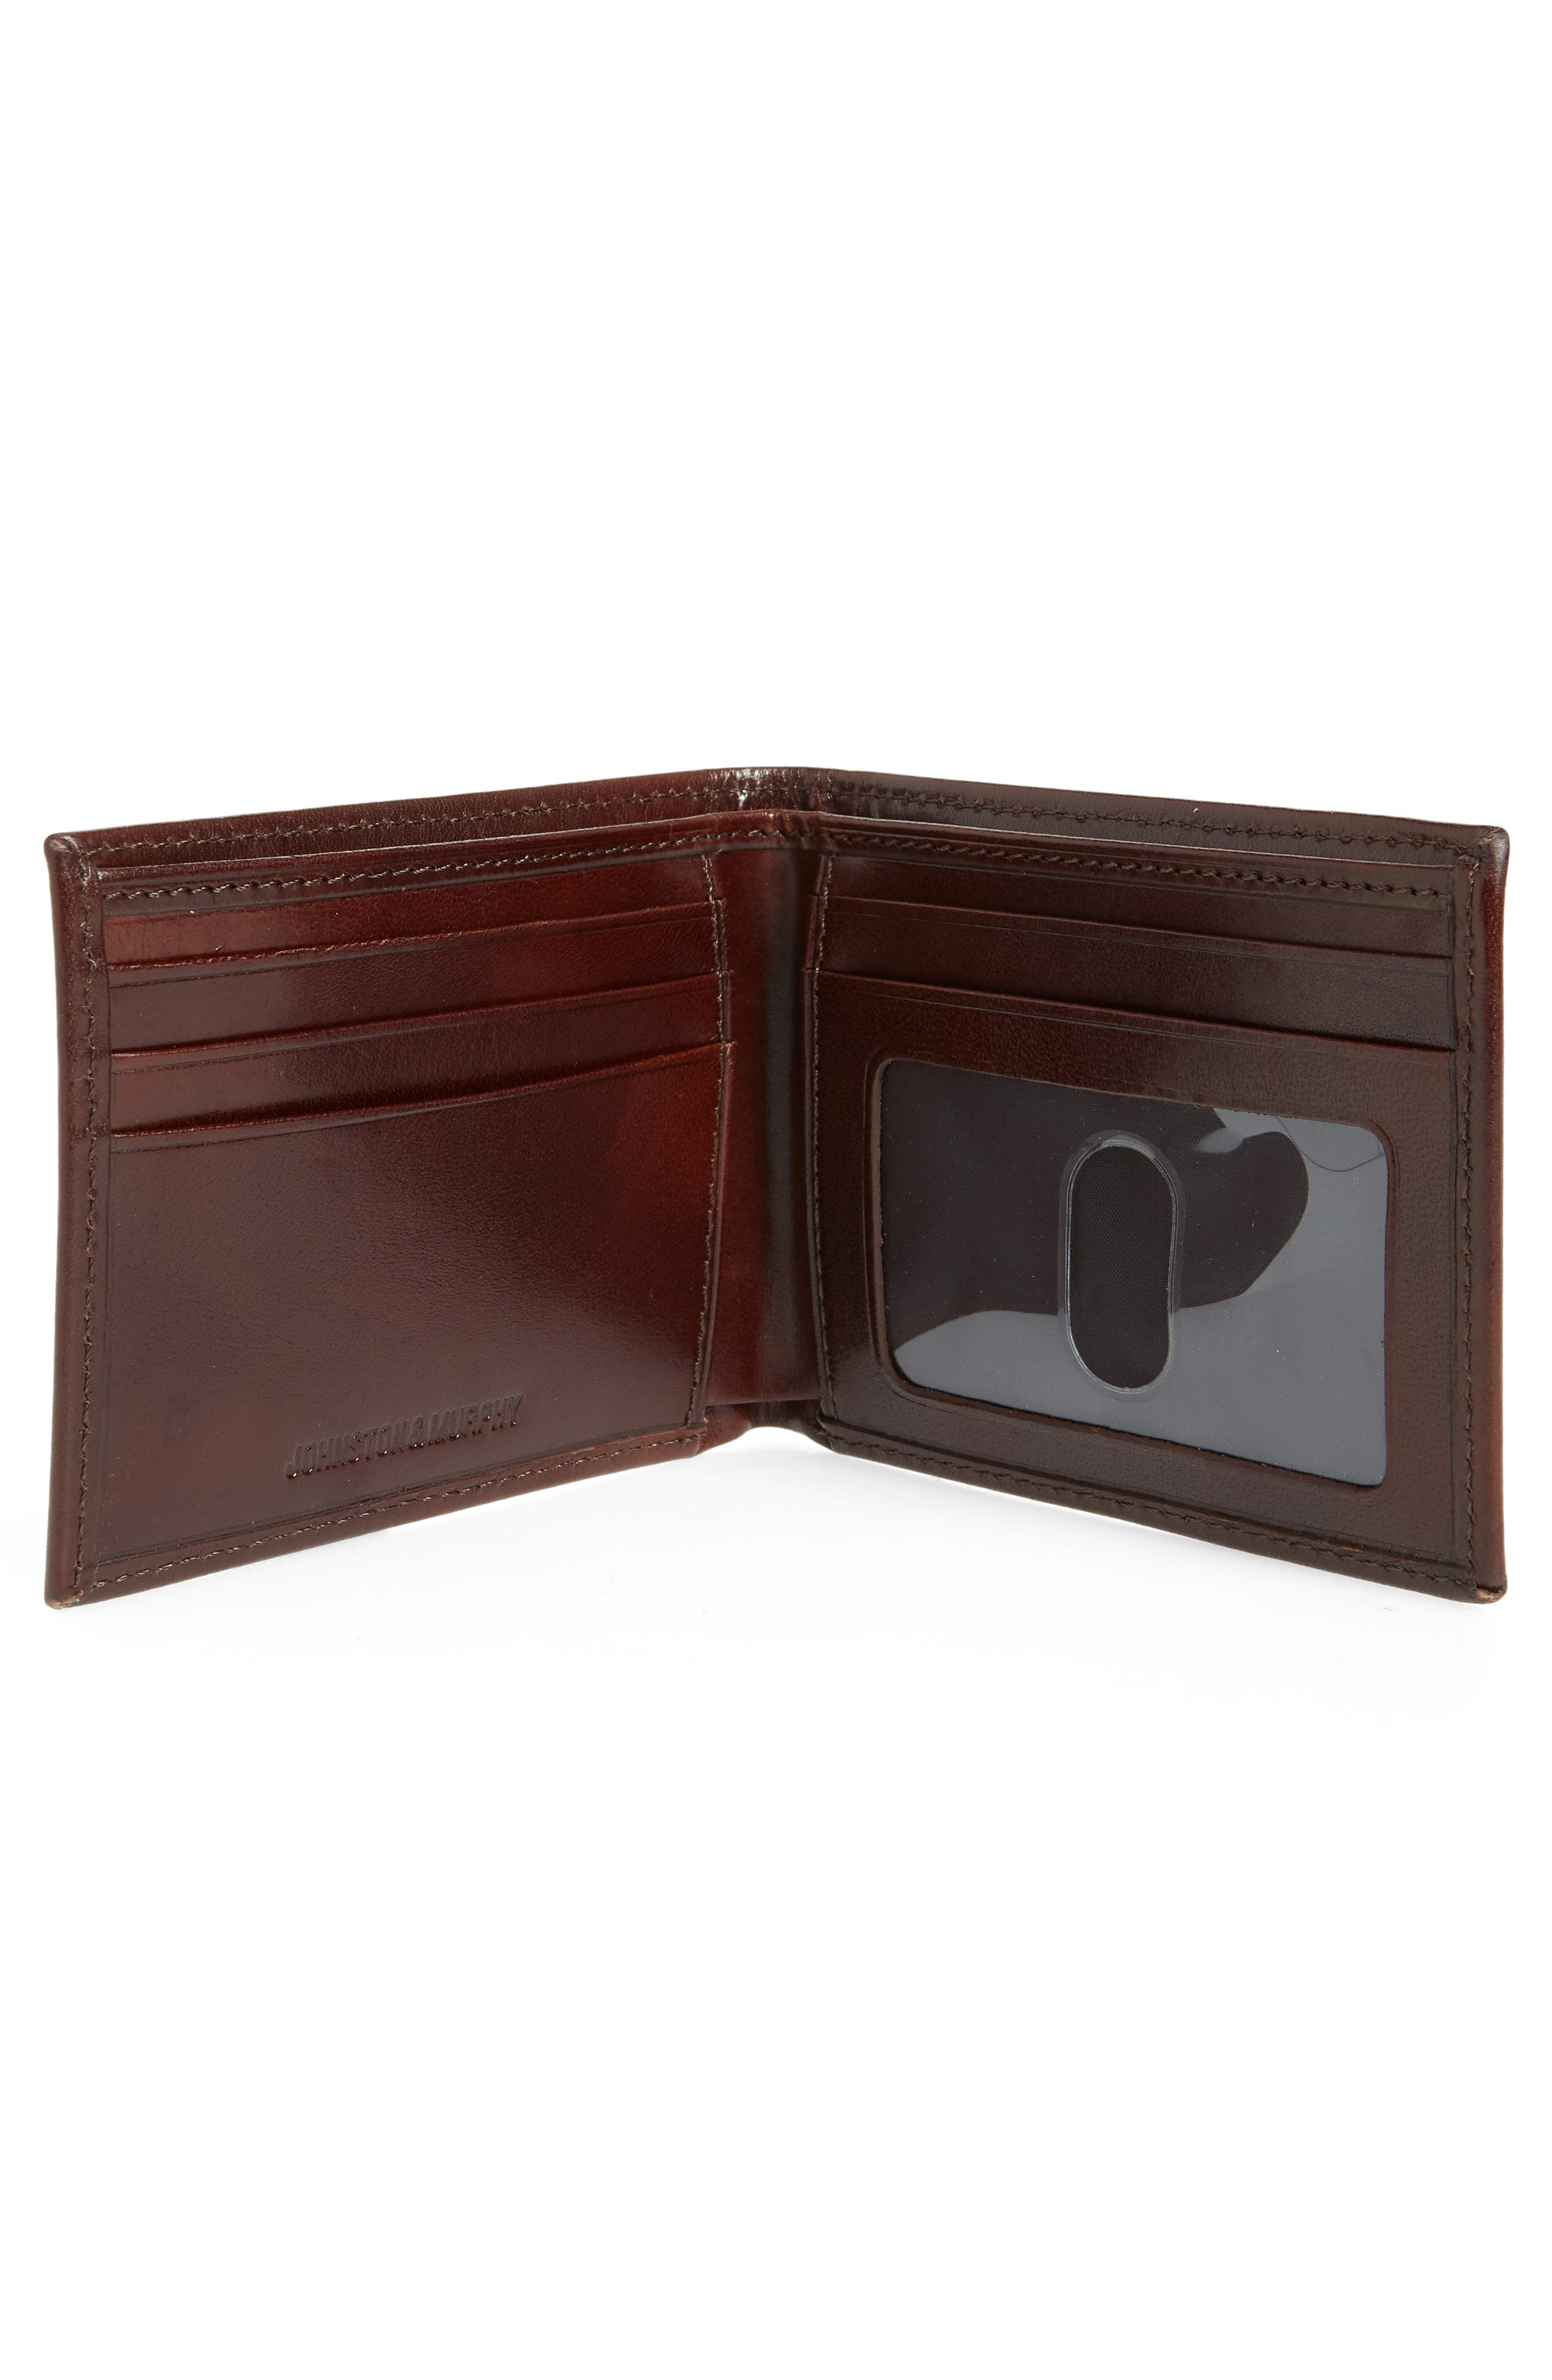 Slimfold Leather Wallet,                             Alternate thumbnail 3, color,                             Brown